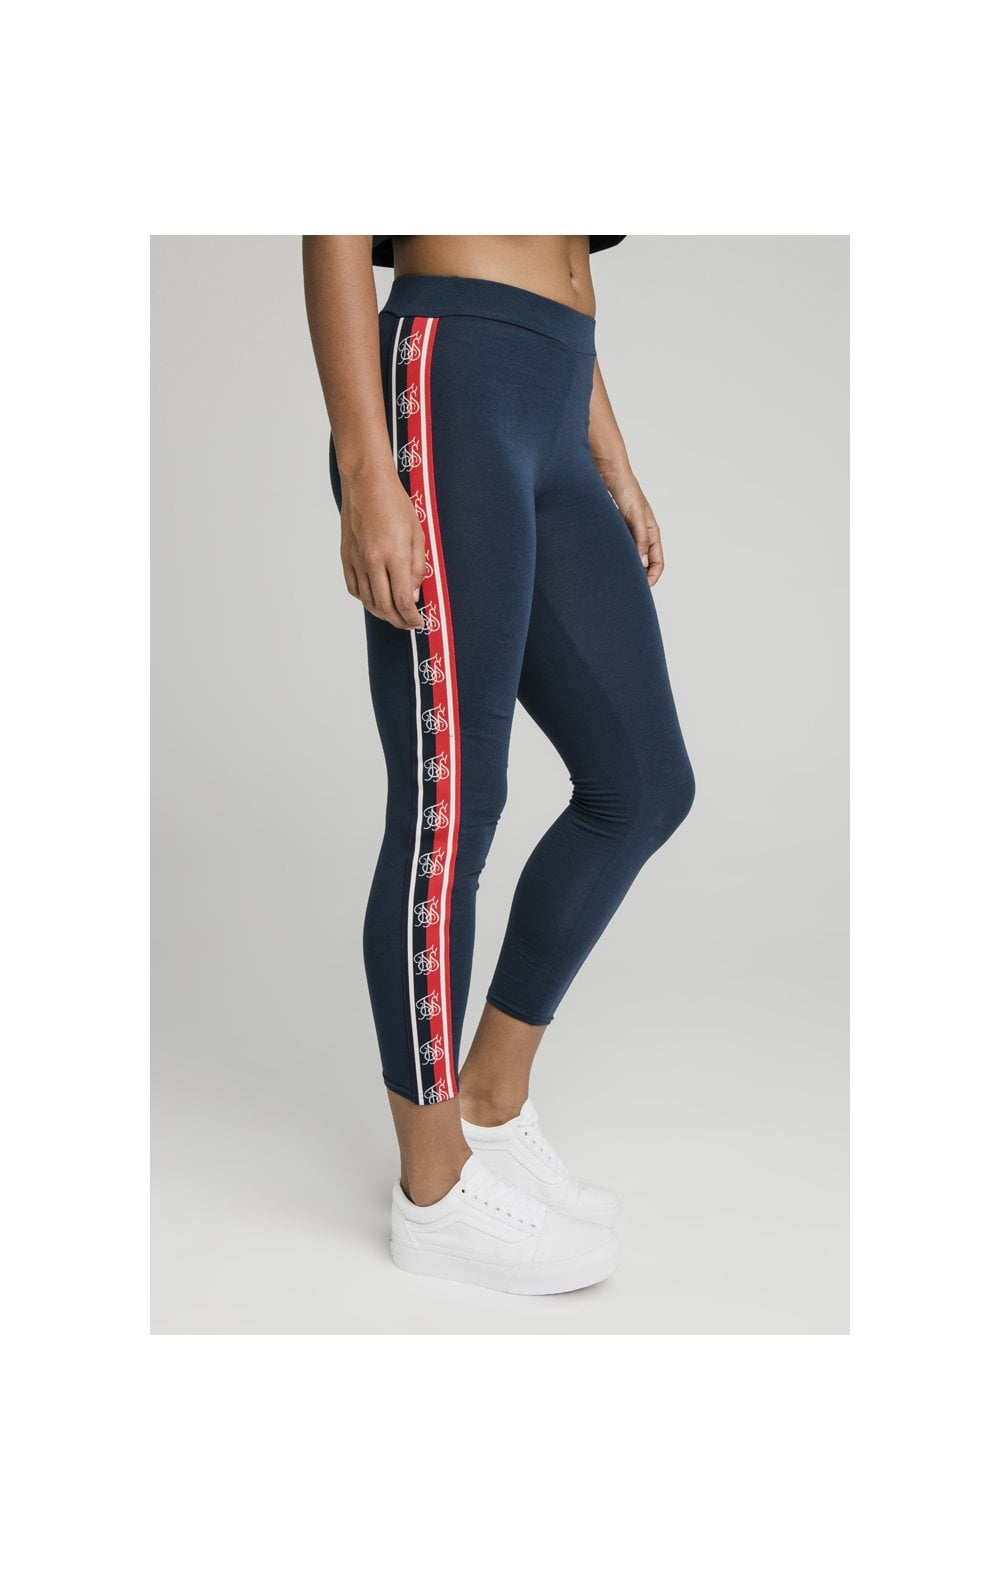 SikSilk Classic Tape Leggings - Navy (2)